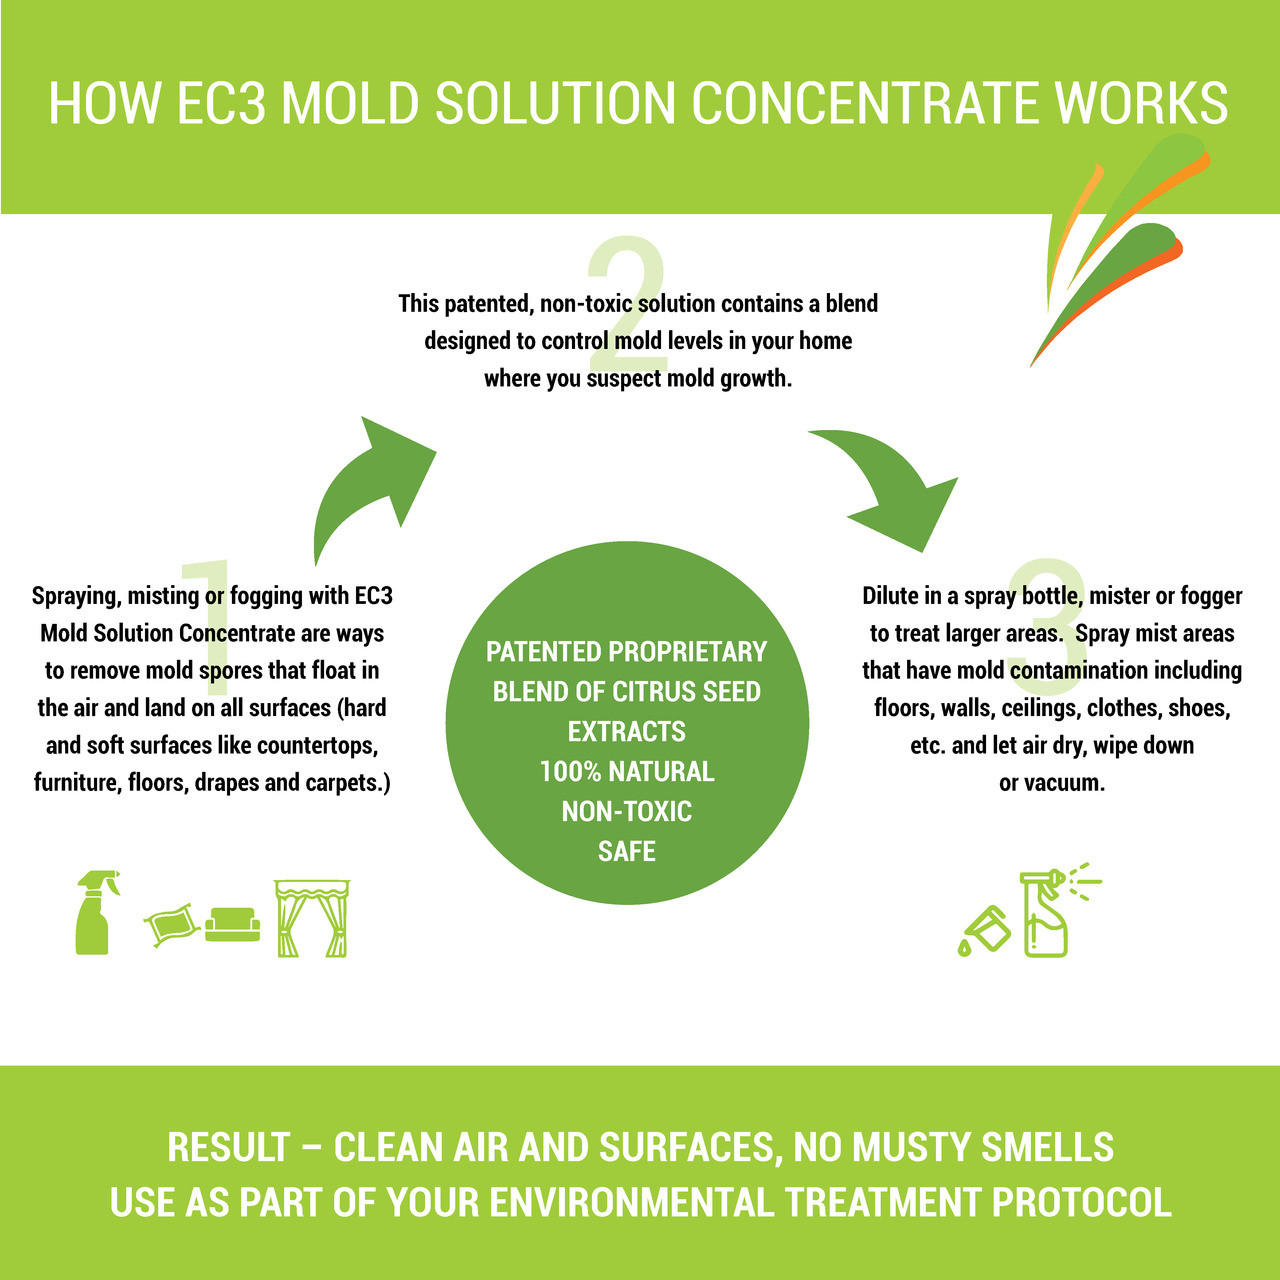 EC3 Mold Solution Concentrate